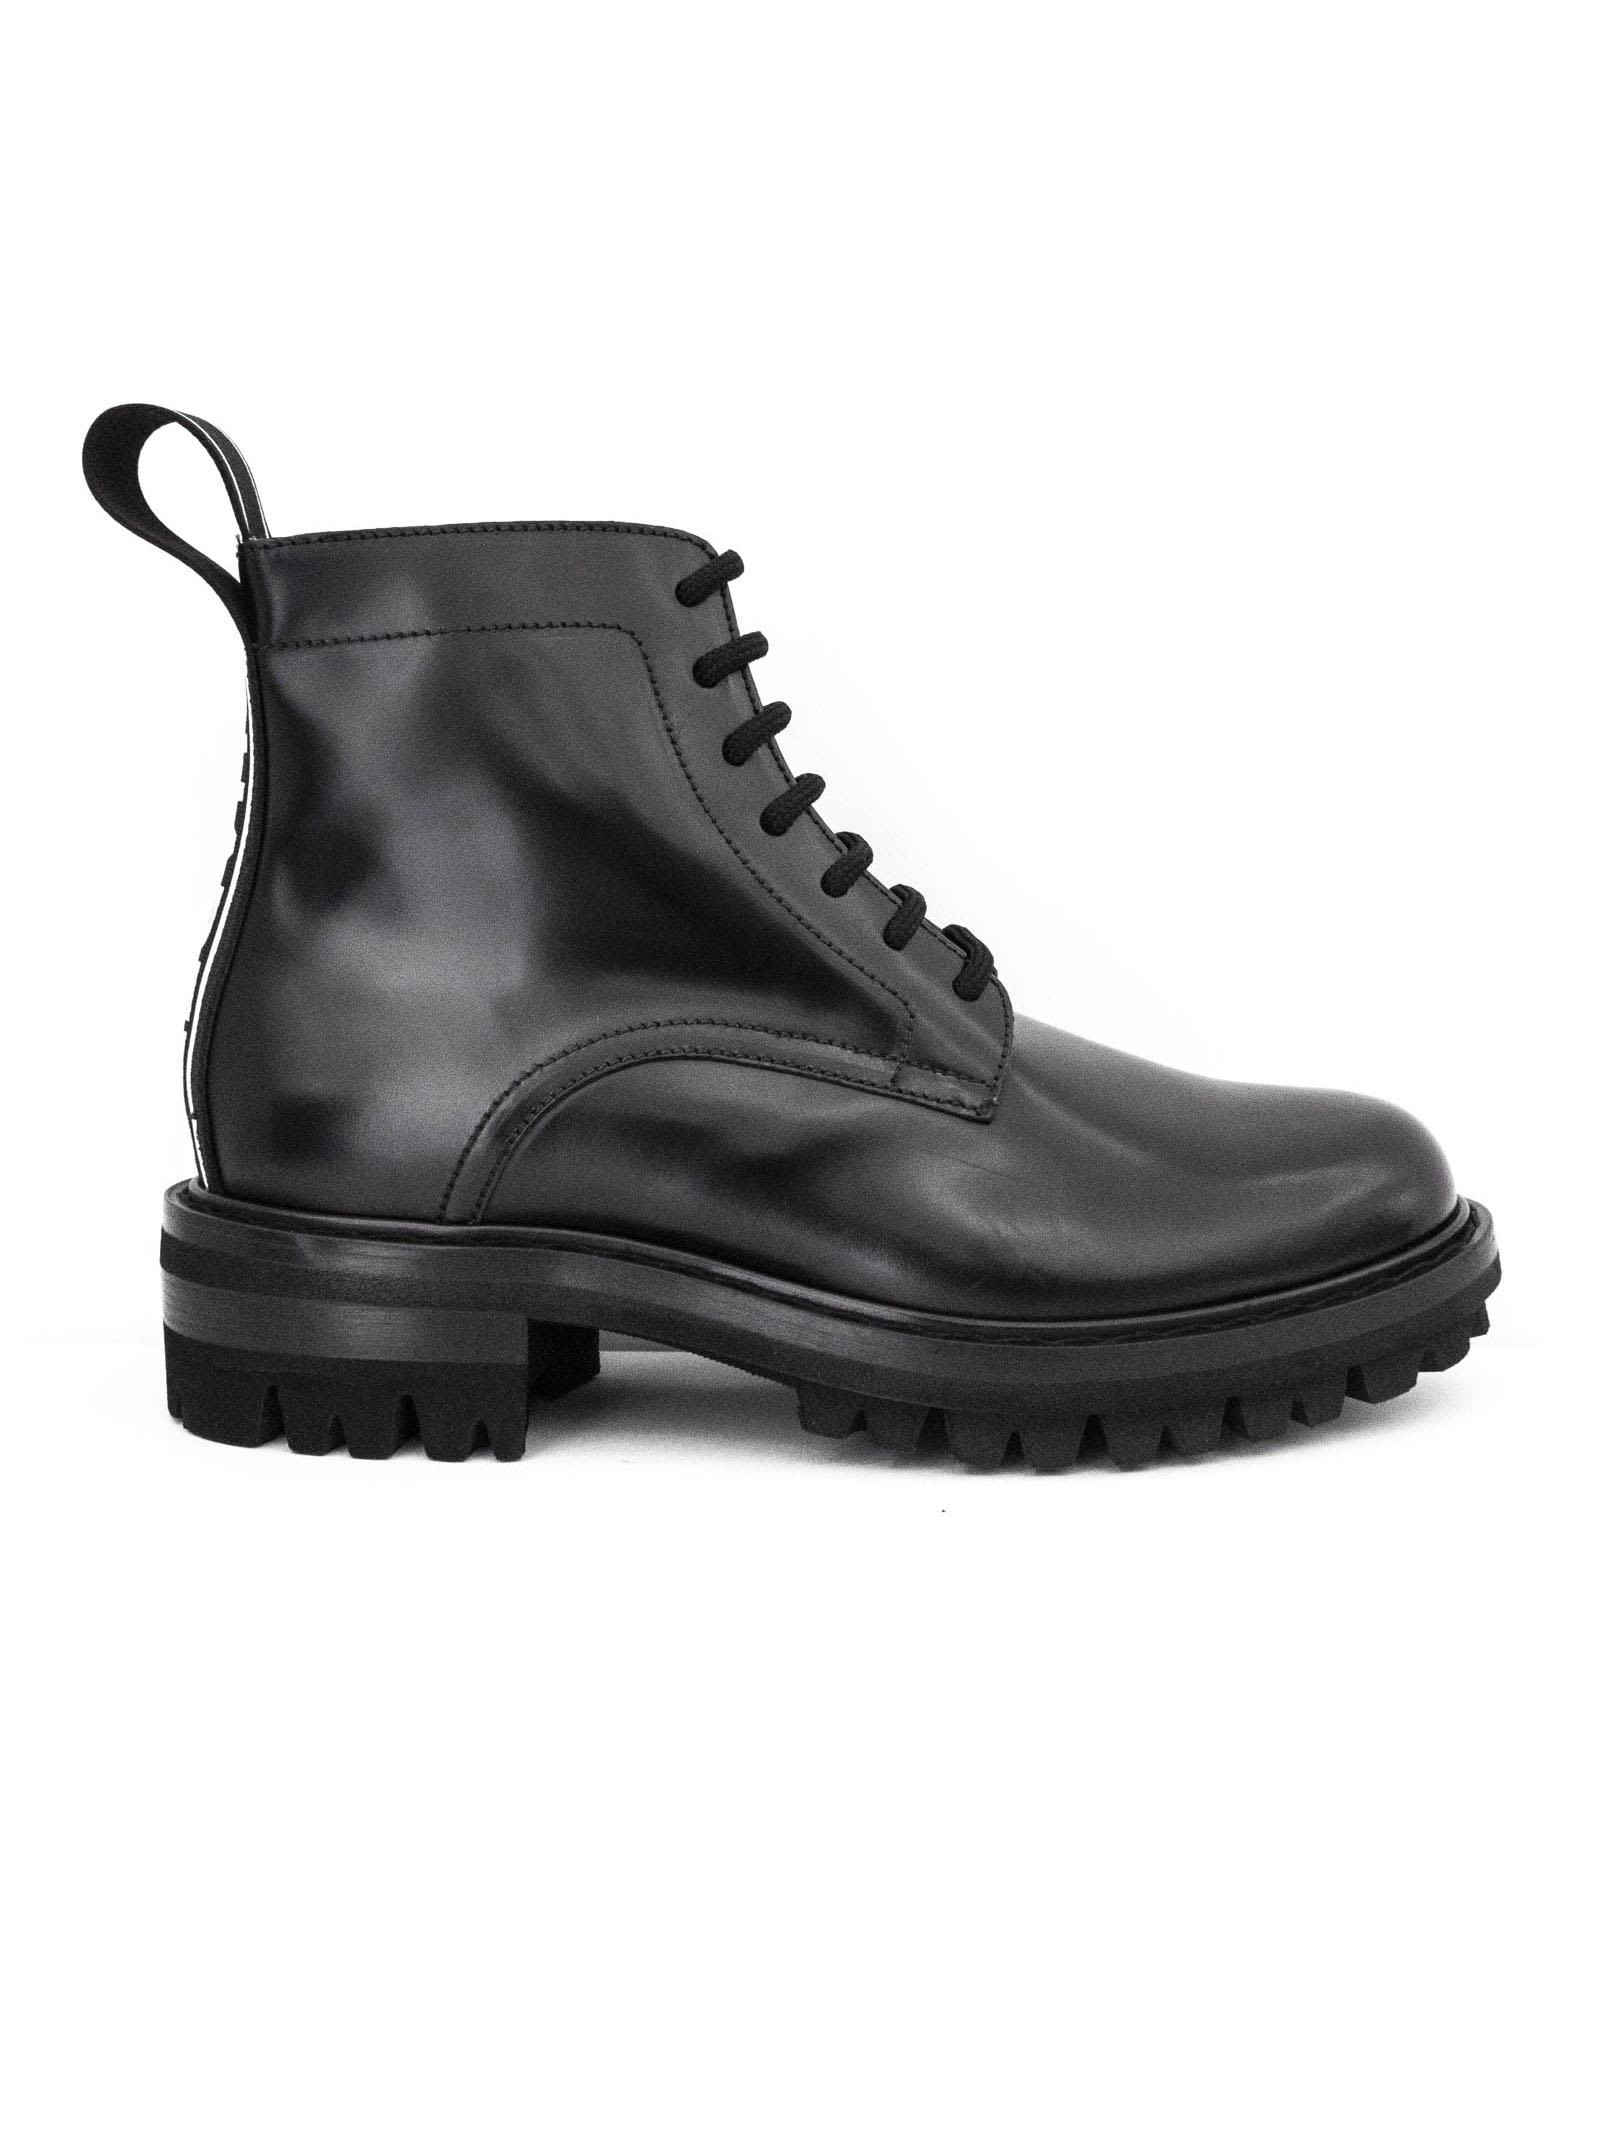 dsquared2 -  Black Calfskin Ankle Boots.